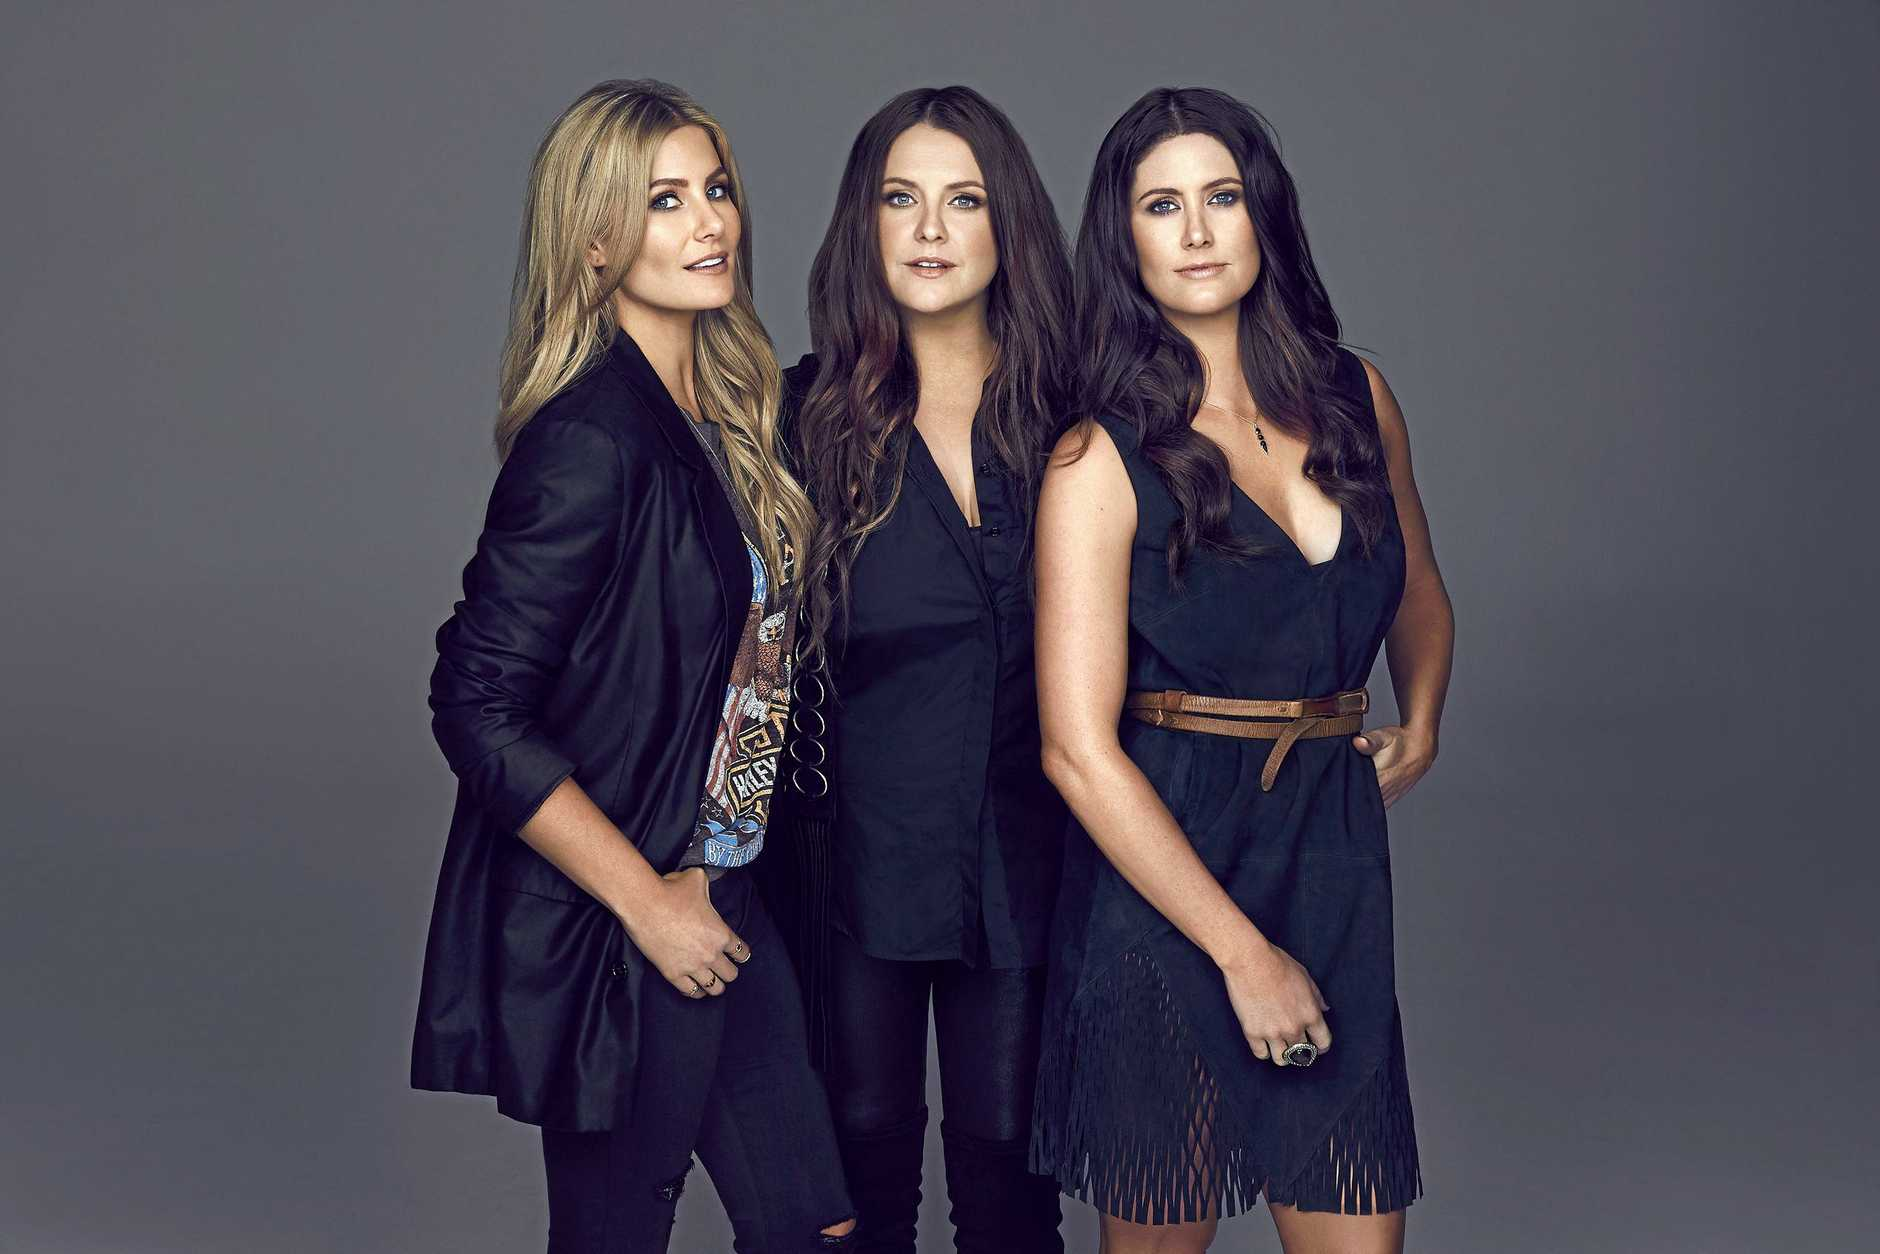 The McClymonts - Sam, Brooke and Mollie - will host the 2018 CMC Music Awards live from The Star Gold Coast.